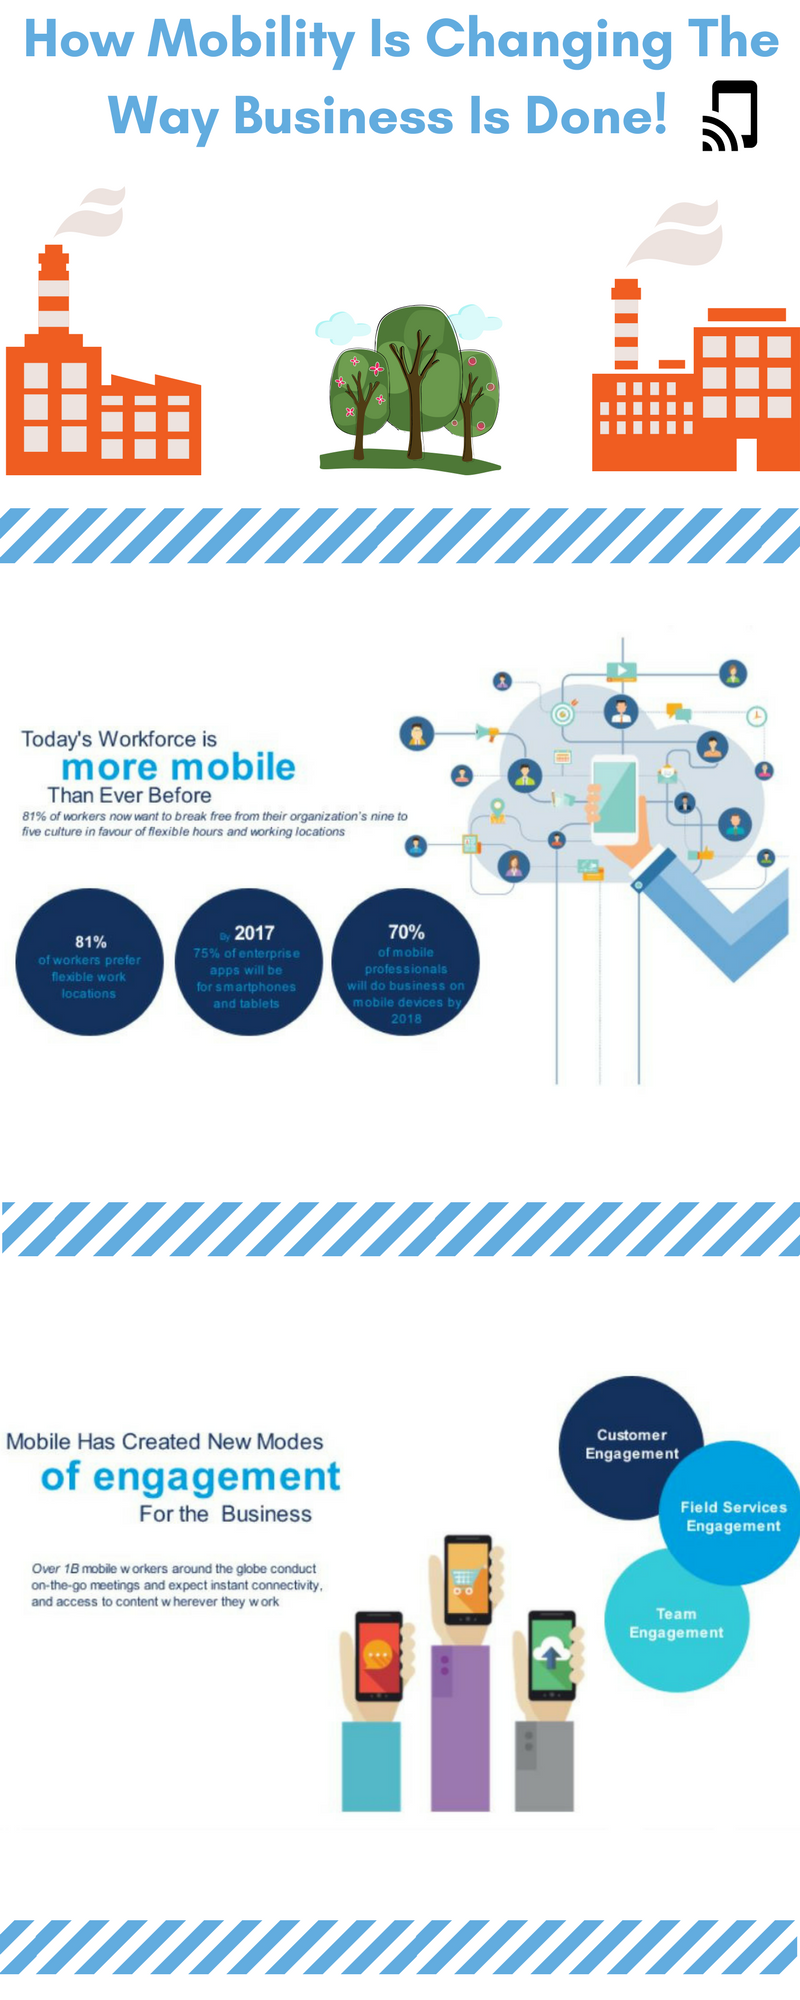 How Mobility is Changing The Way Business is Done (with Stats) 1